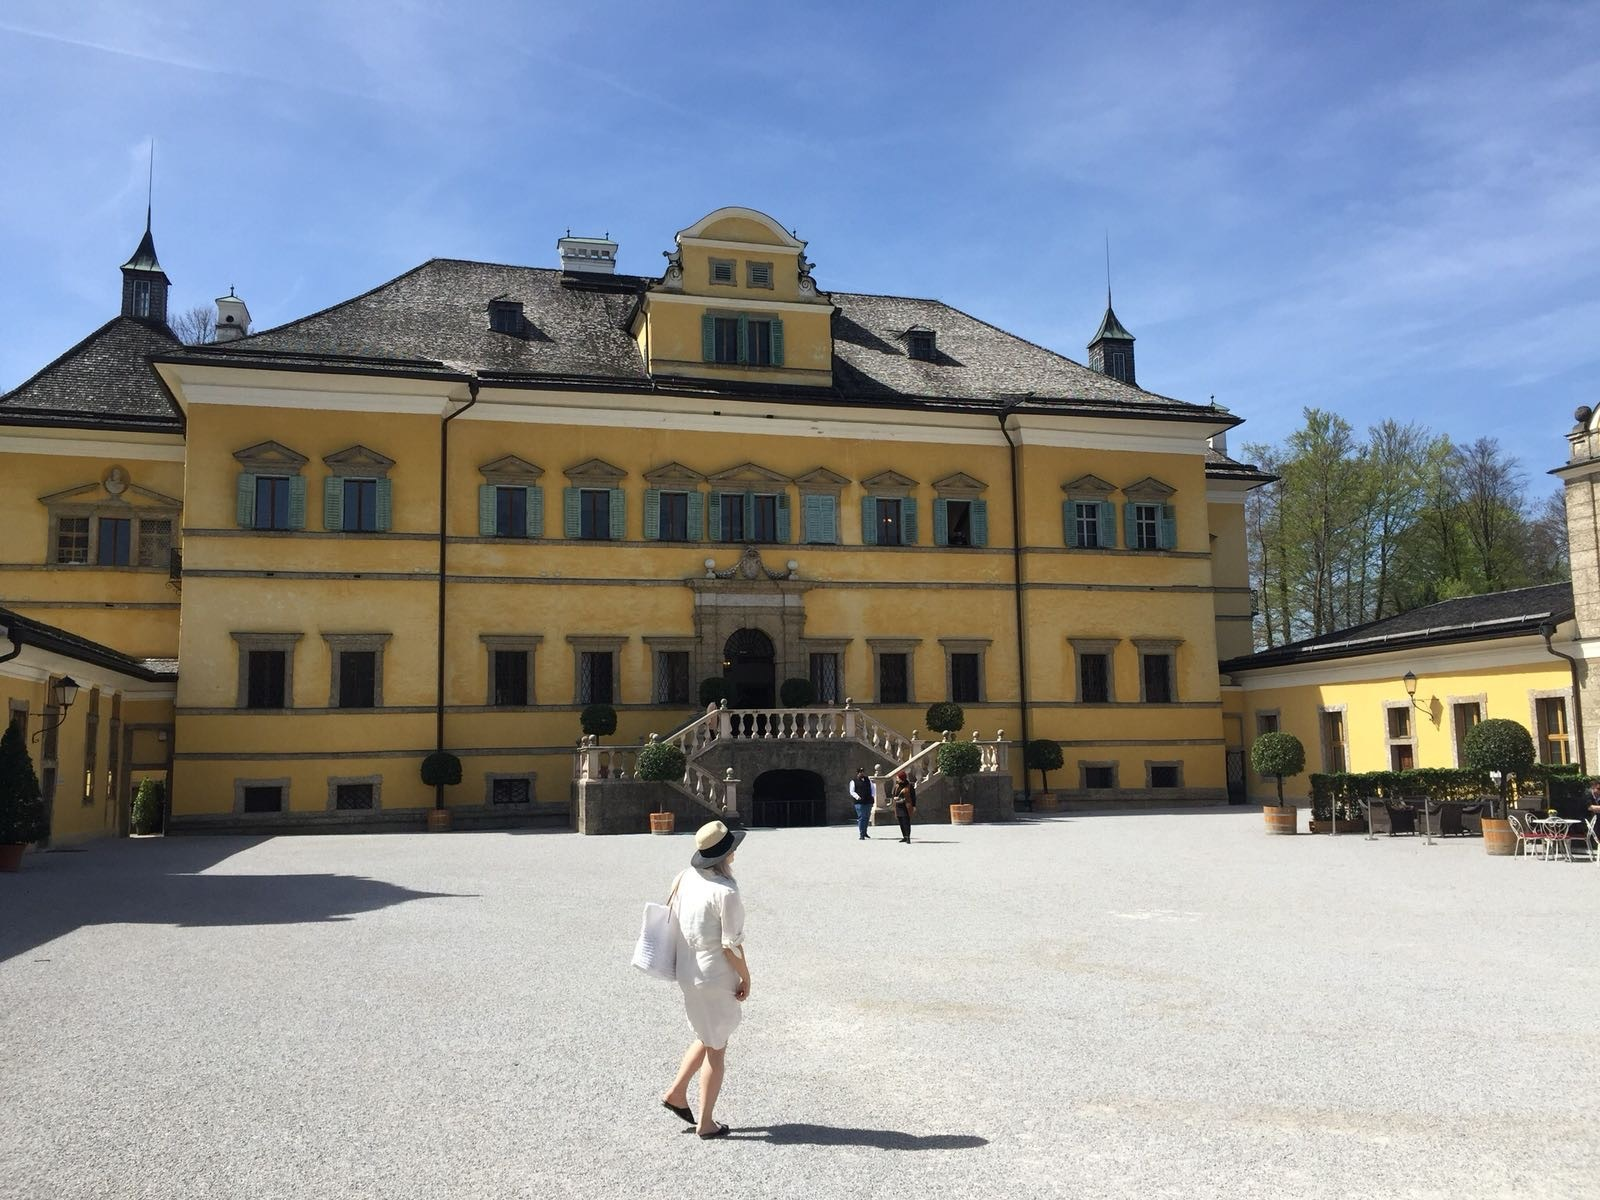 Sound of Music Tour, Salzburg - for use in Salzburg BA campaign